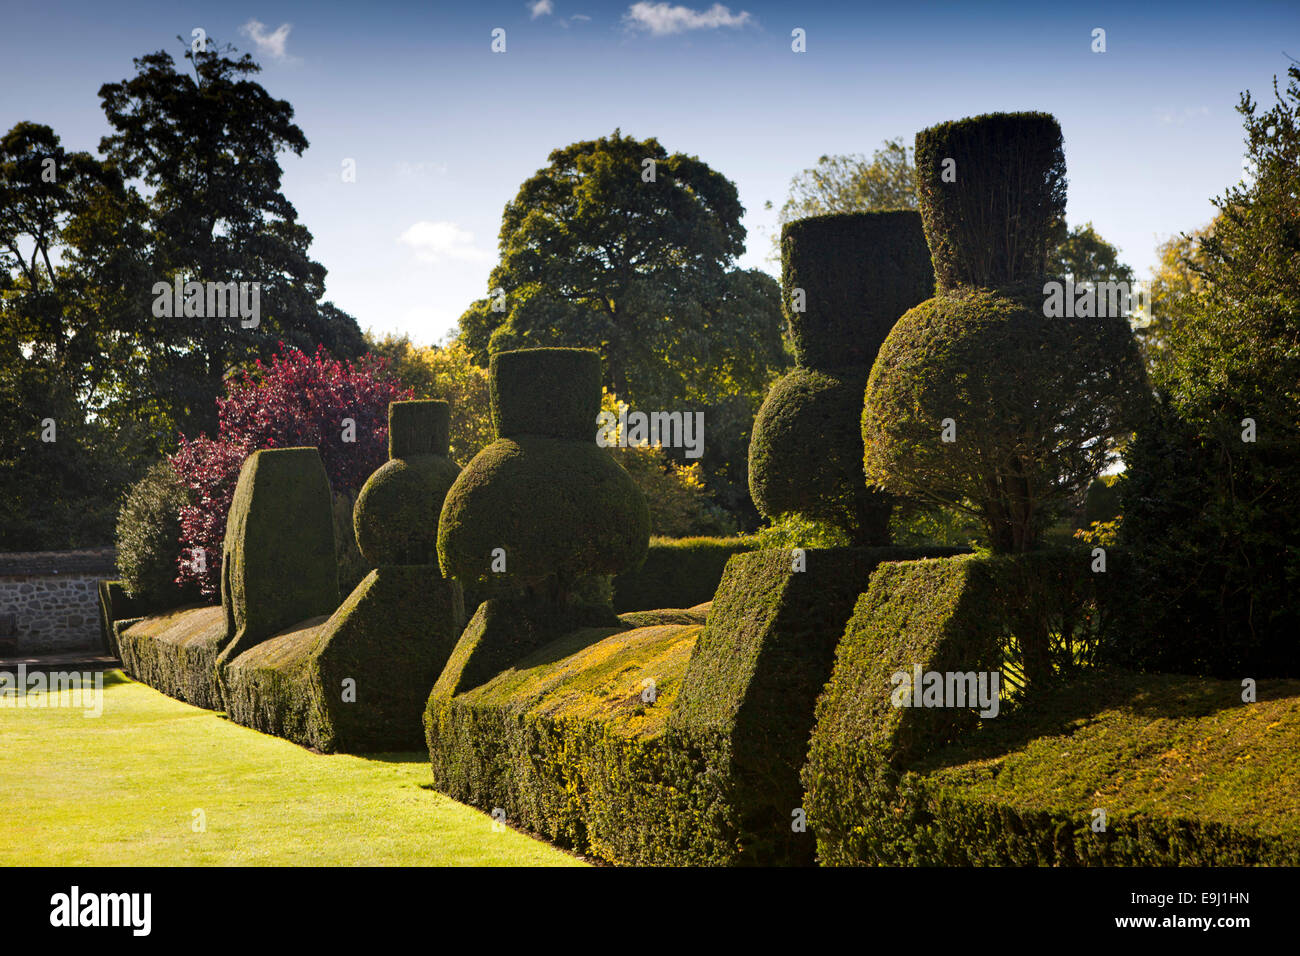 UK, England, Wiltshire, Avebury Manor gardens, topiary hedge - Stock Image